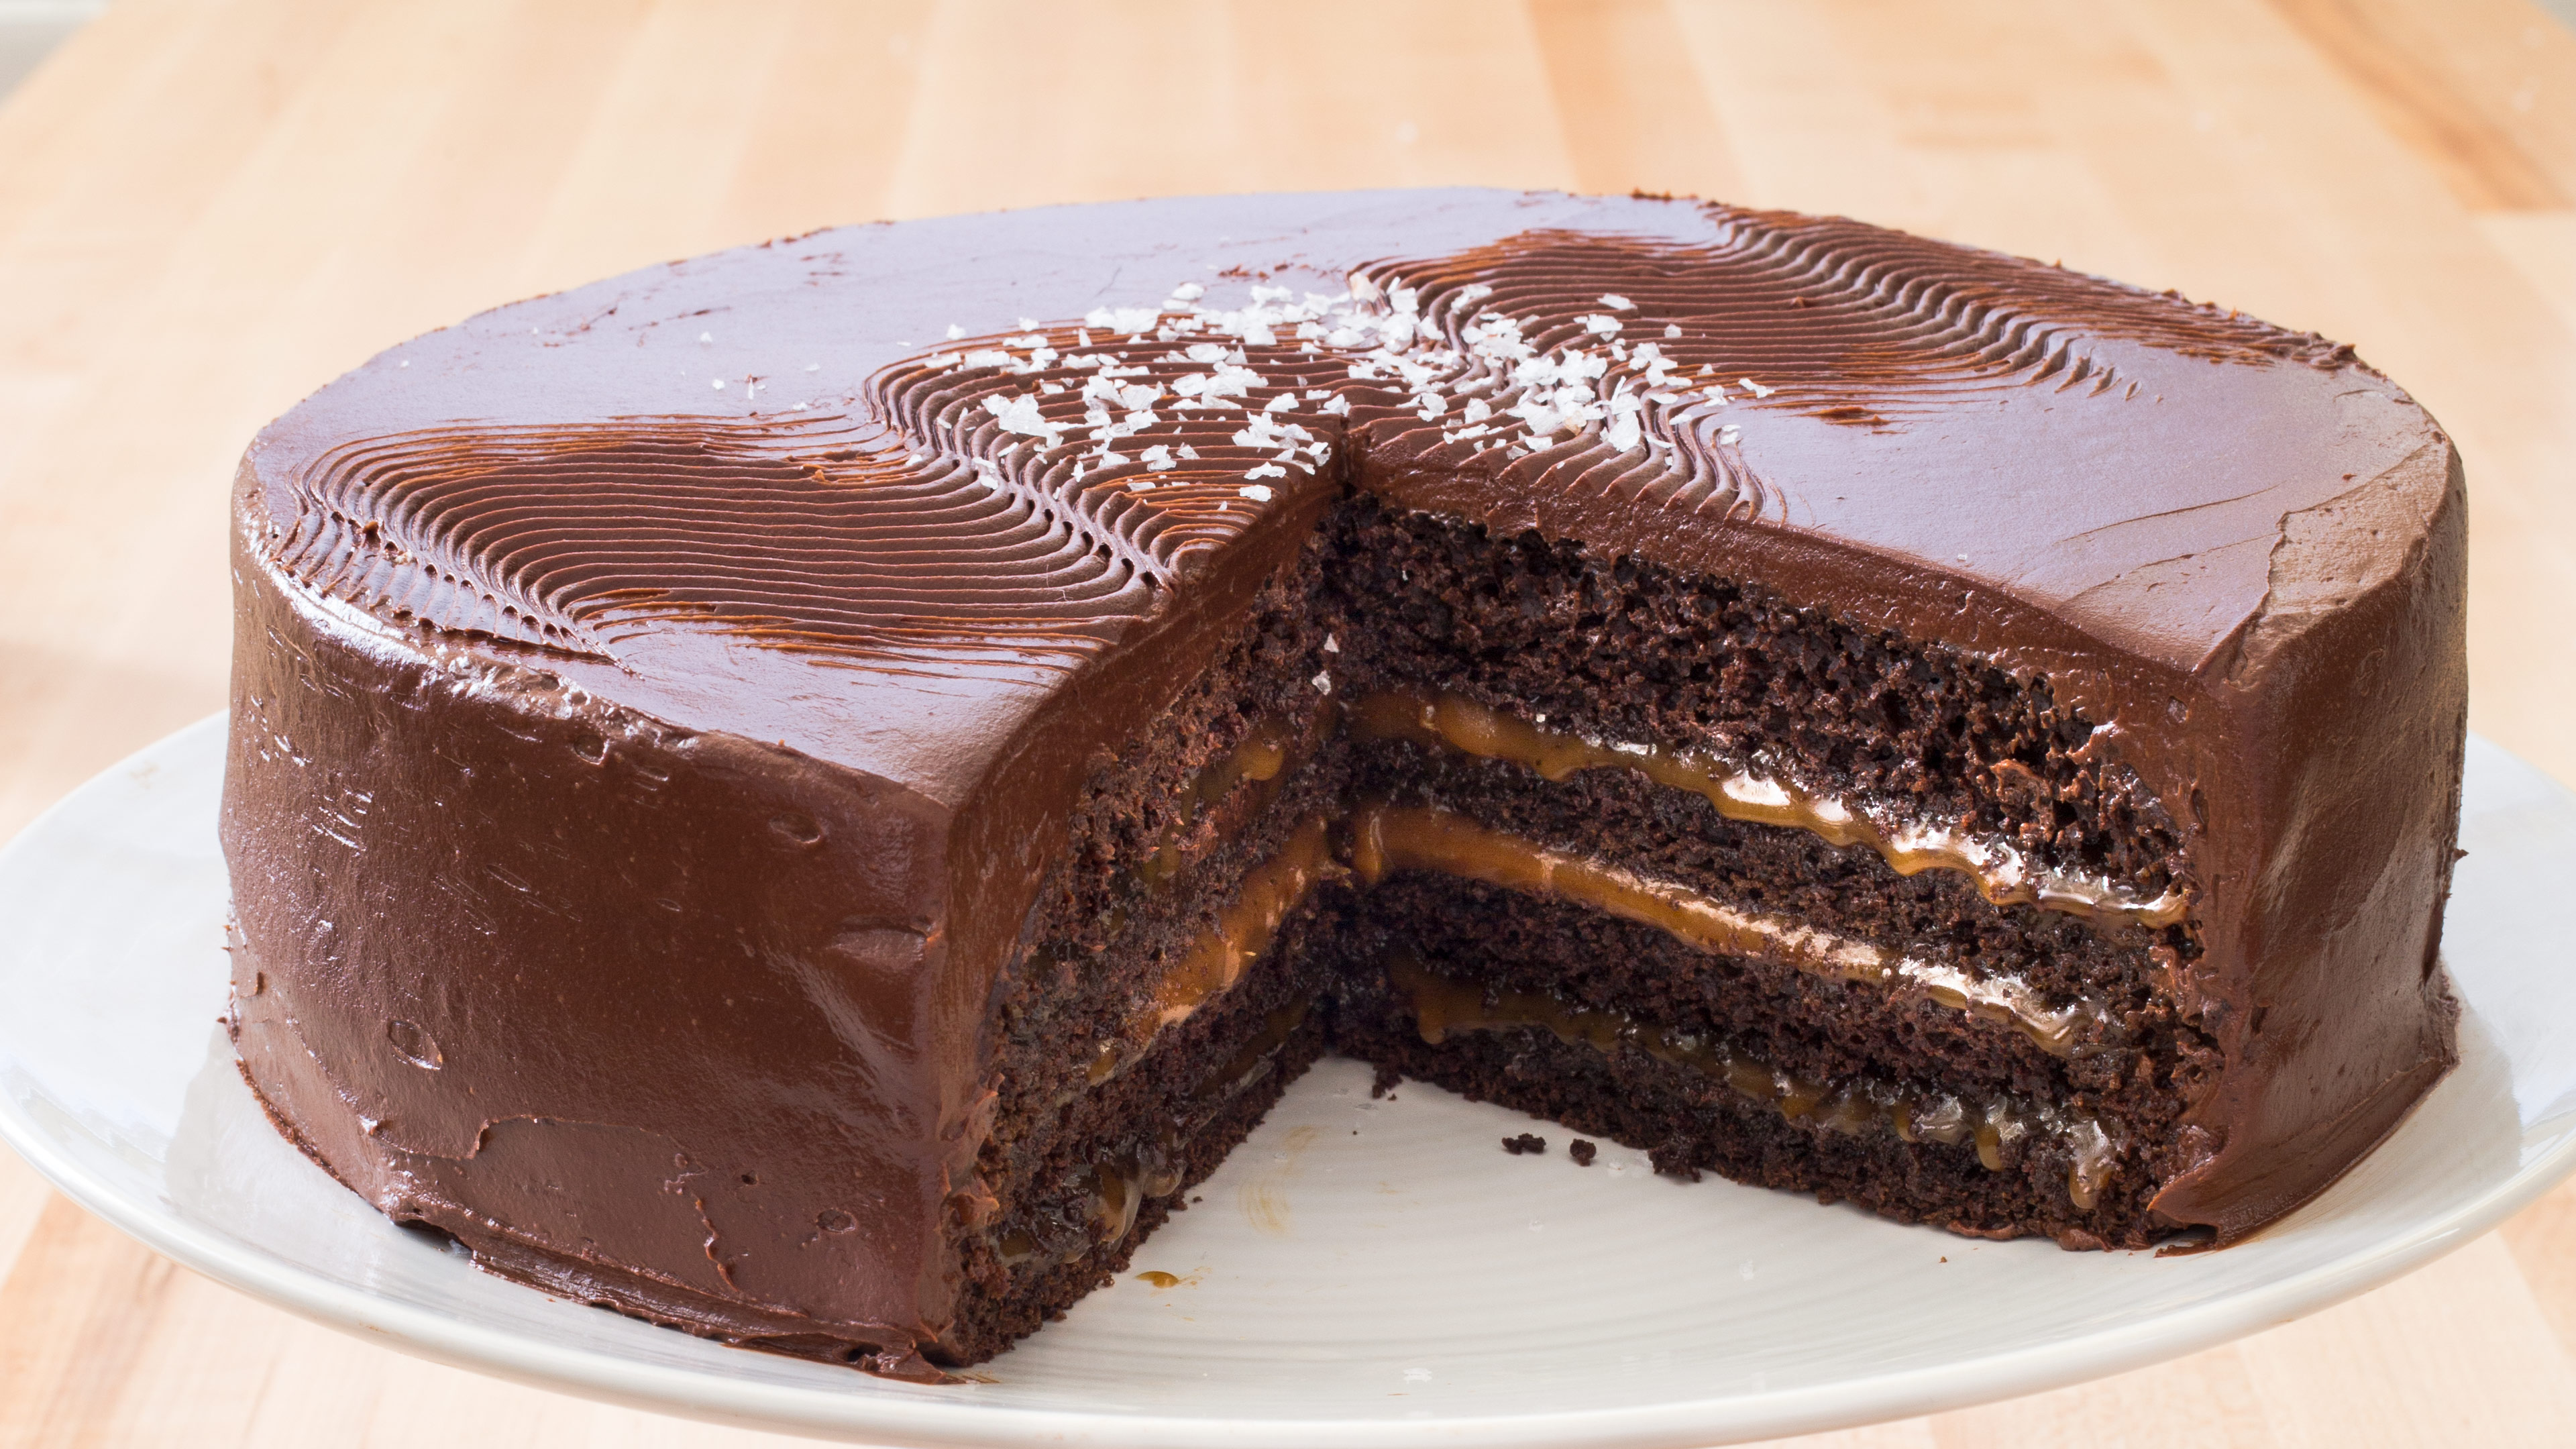 Chocolate-Caramel Layer Cake | Cook's Illustrated